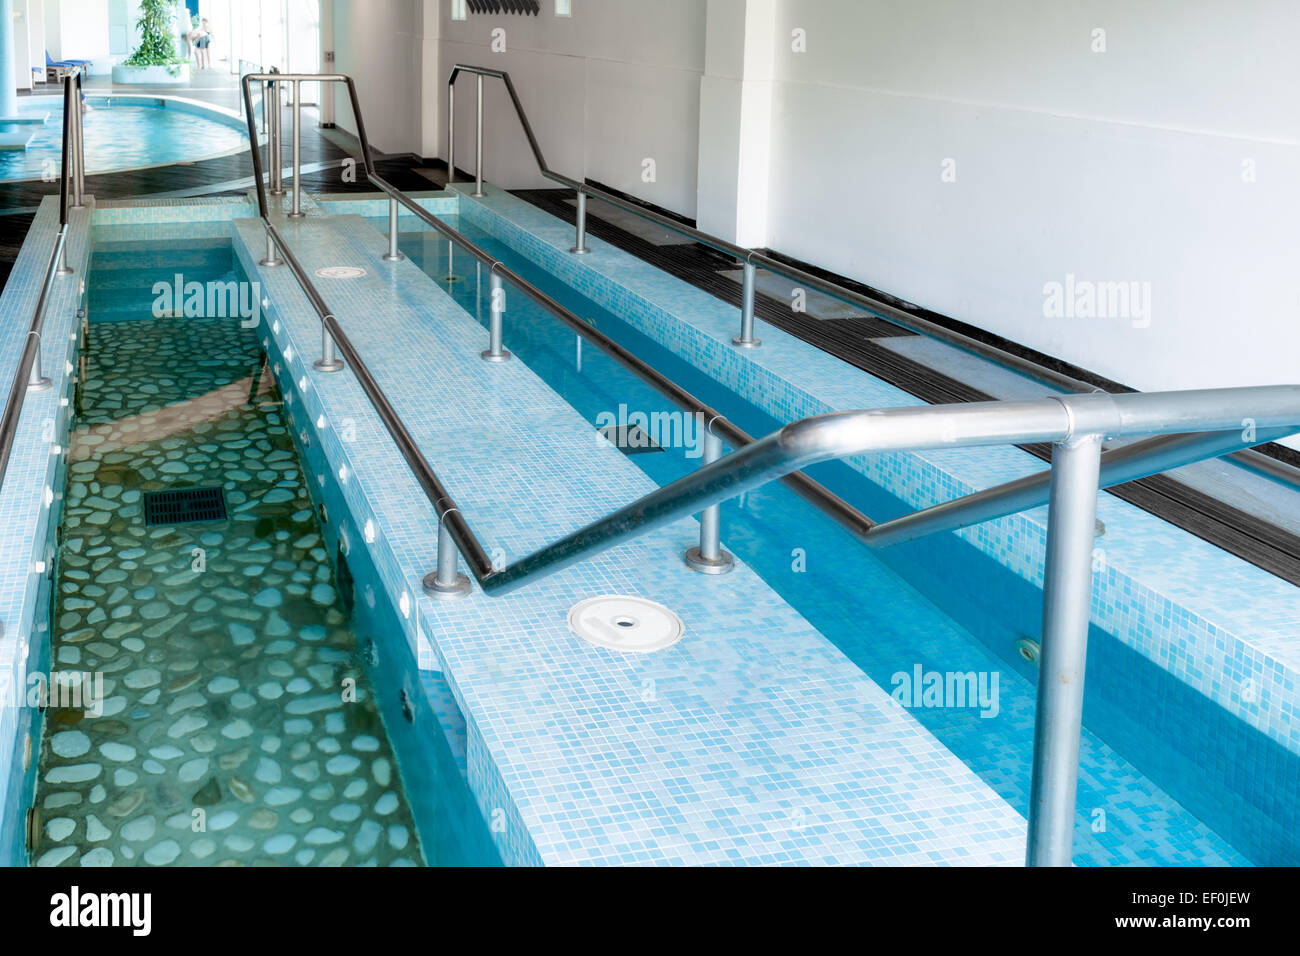 Vascular Therapy Pools - Stock Image